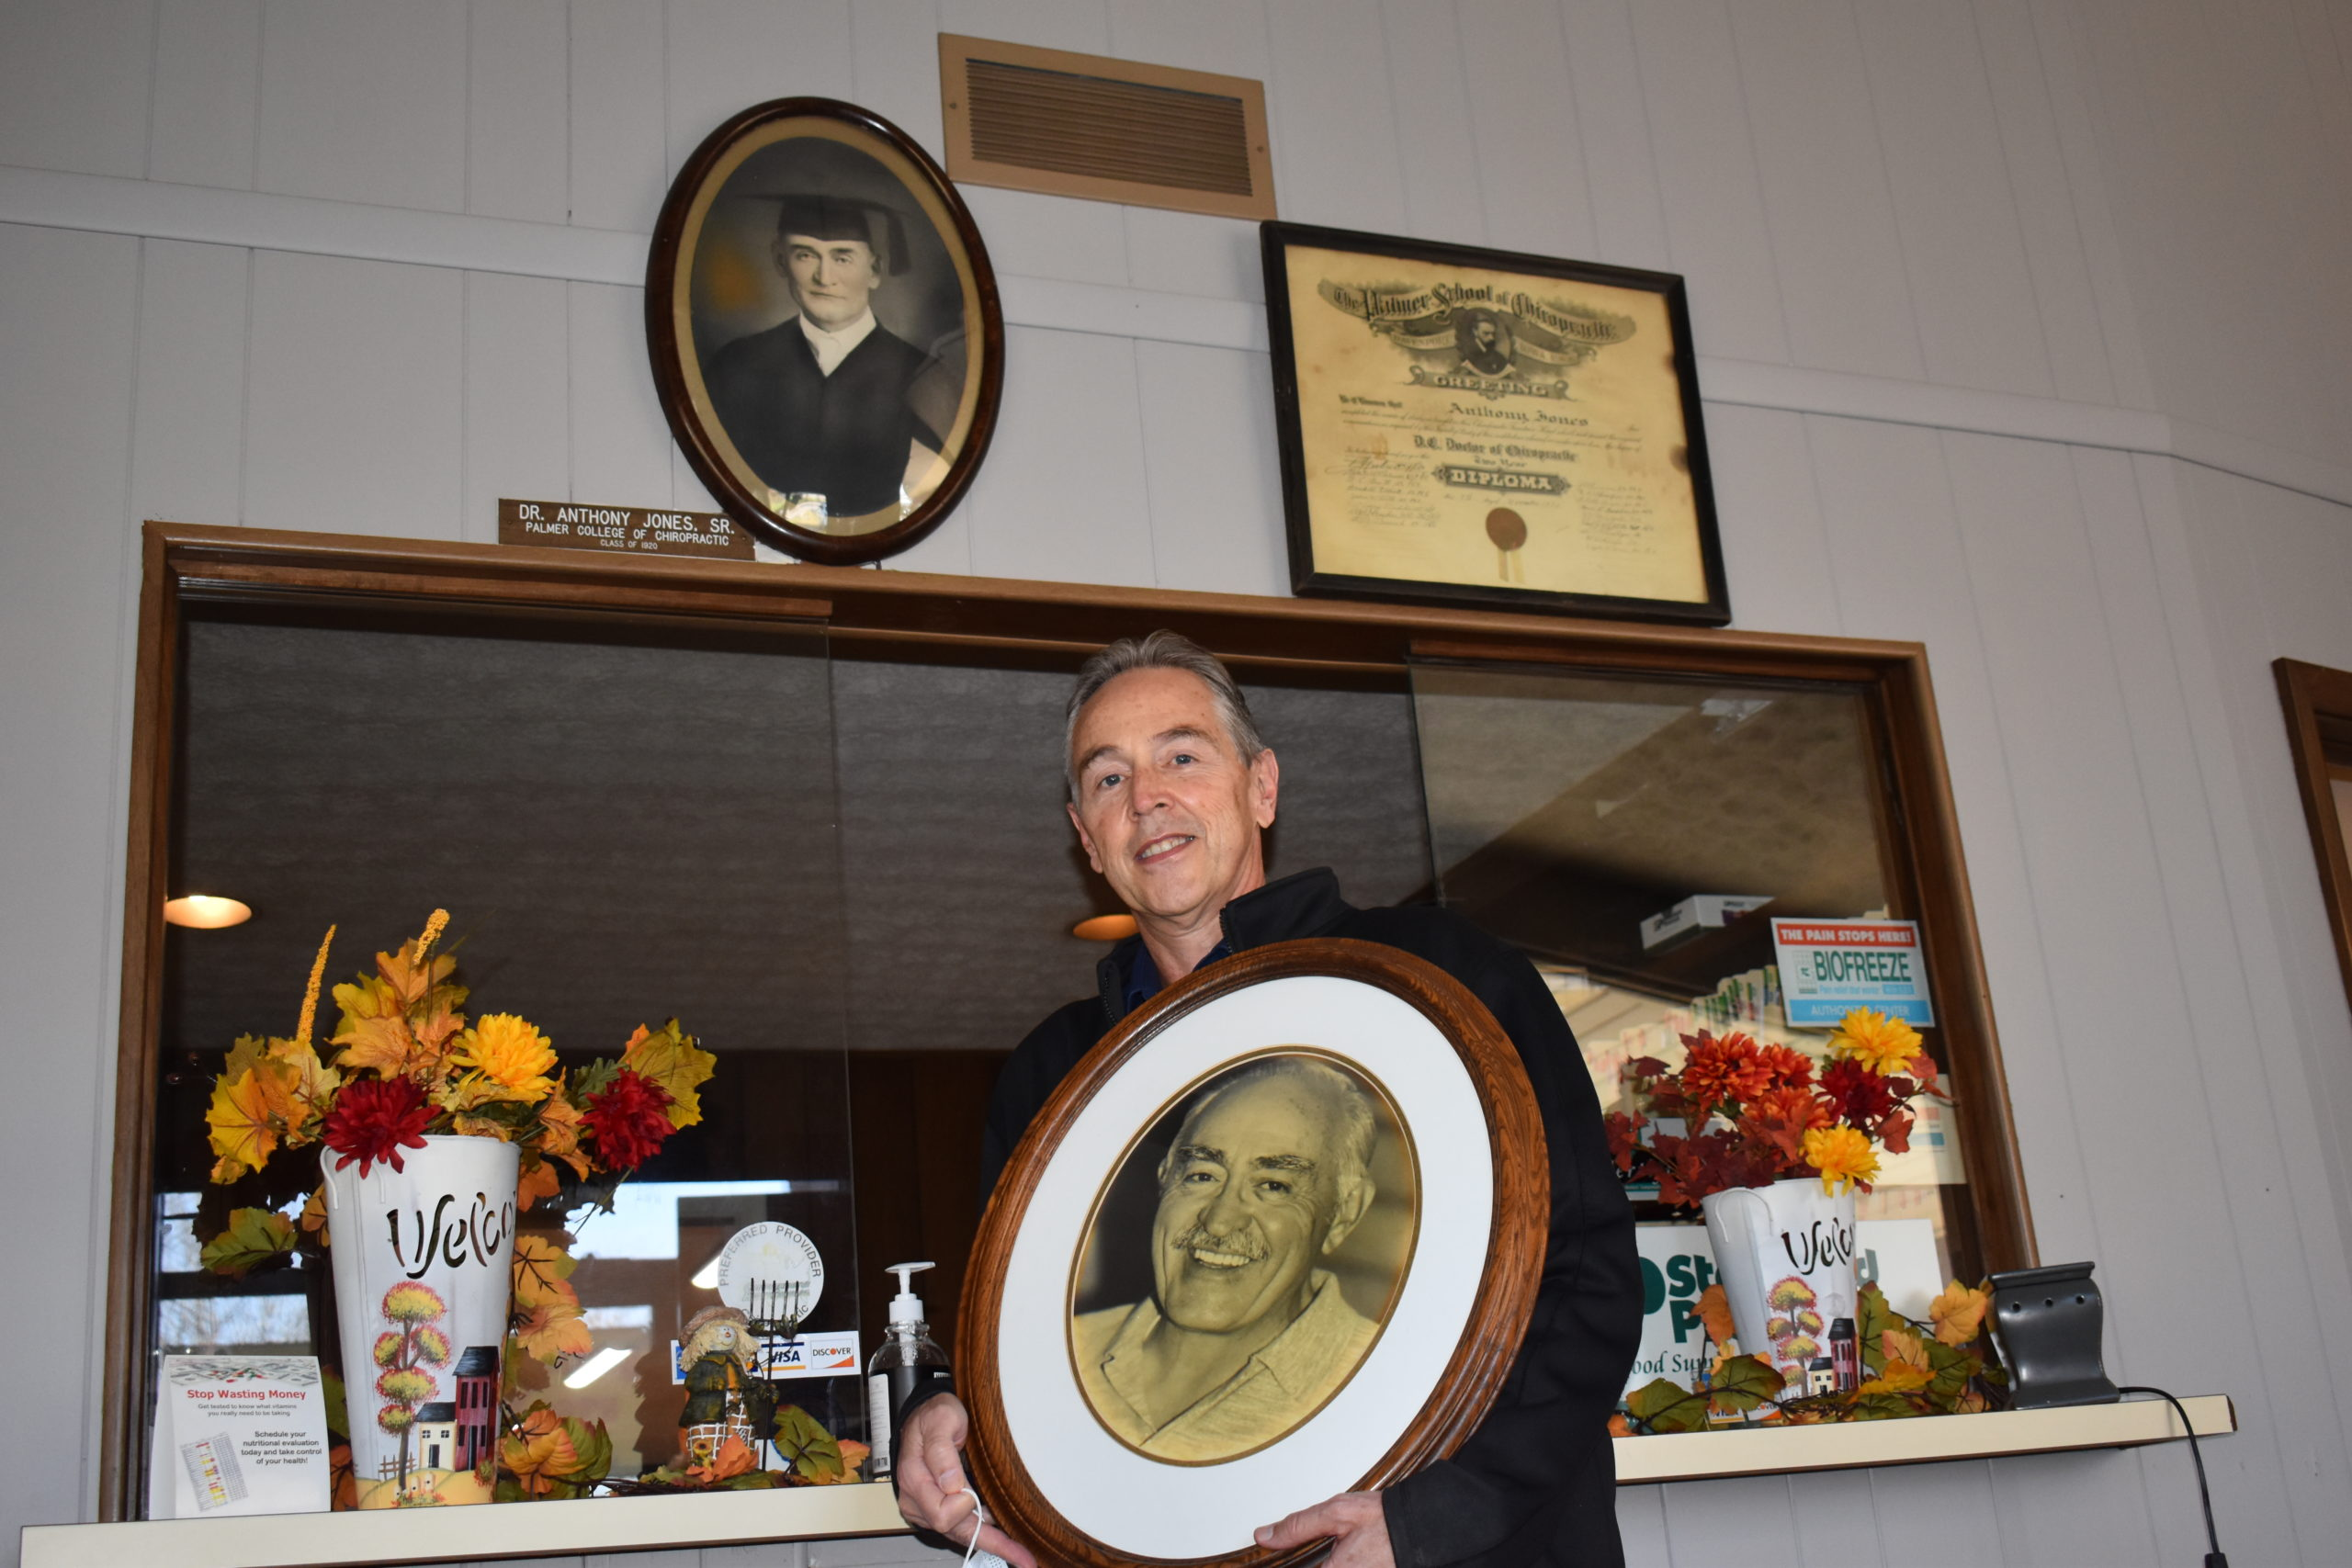 Anthony Jones Jr. holds a photo of his father, Anthony Jones Sr., and they stand below a photo of his grandfather, also named Anthony Jones, who founded Jones Chiropractic Clinic.